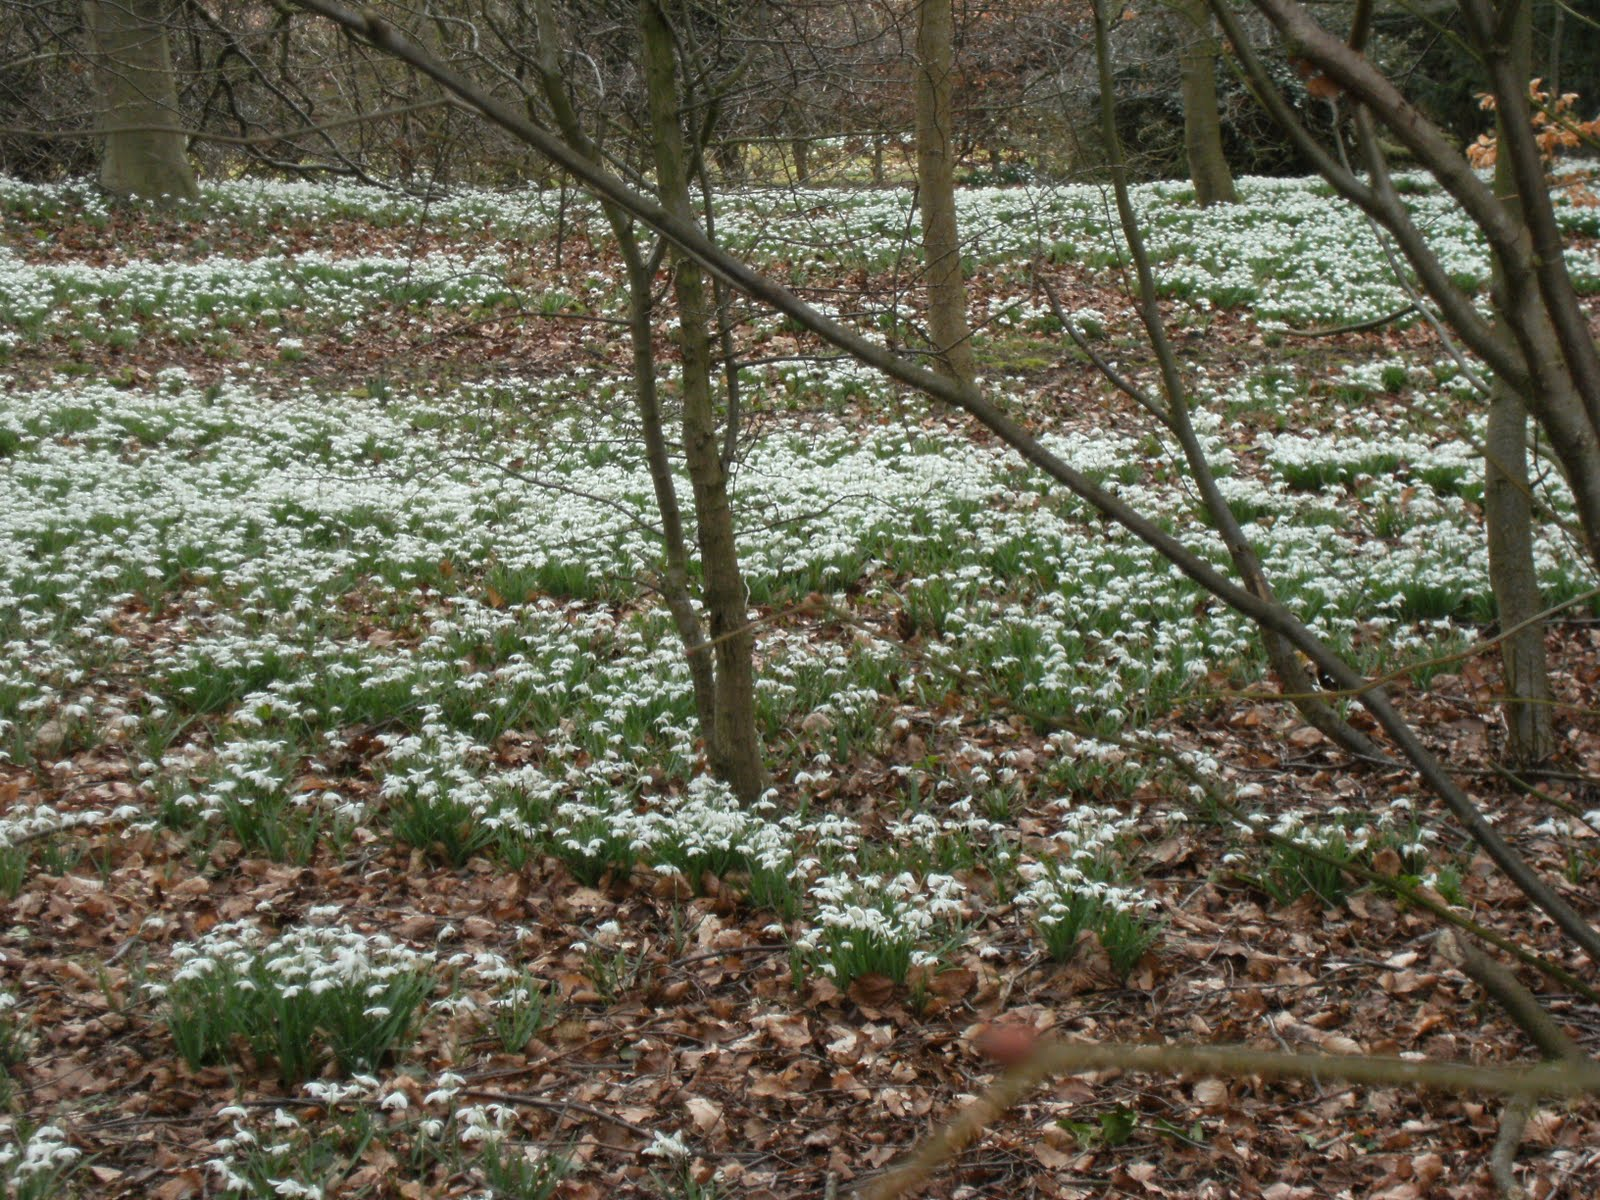 1003130006 Snowdrops in wood near Little Missenden